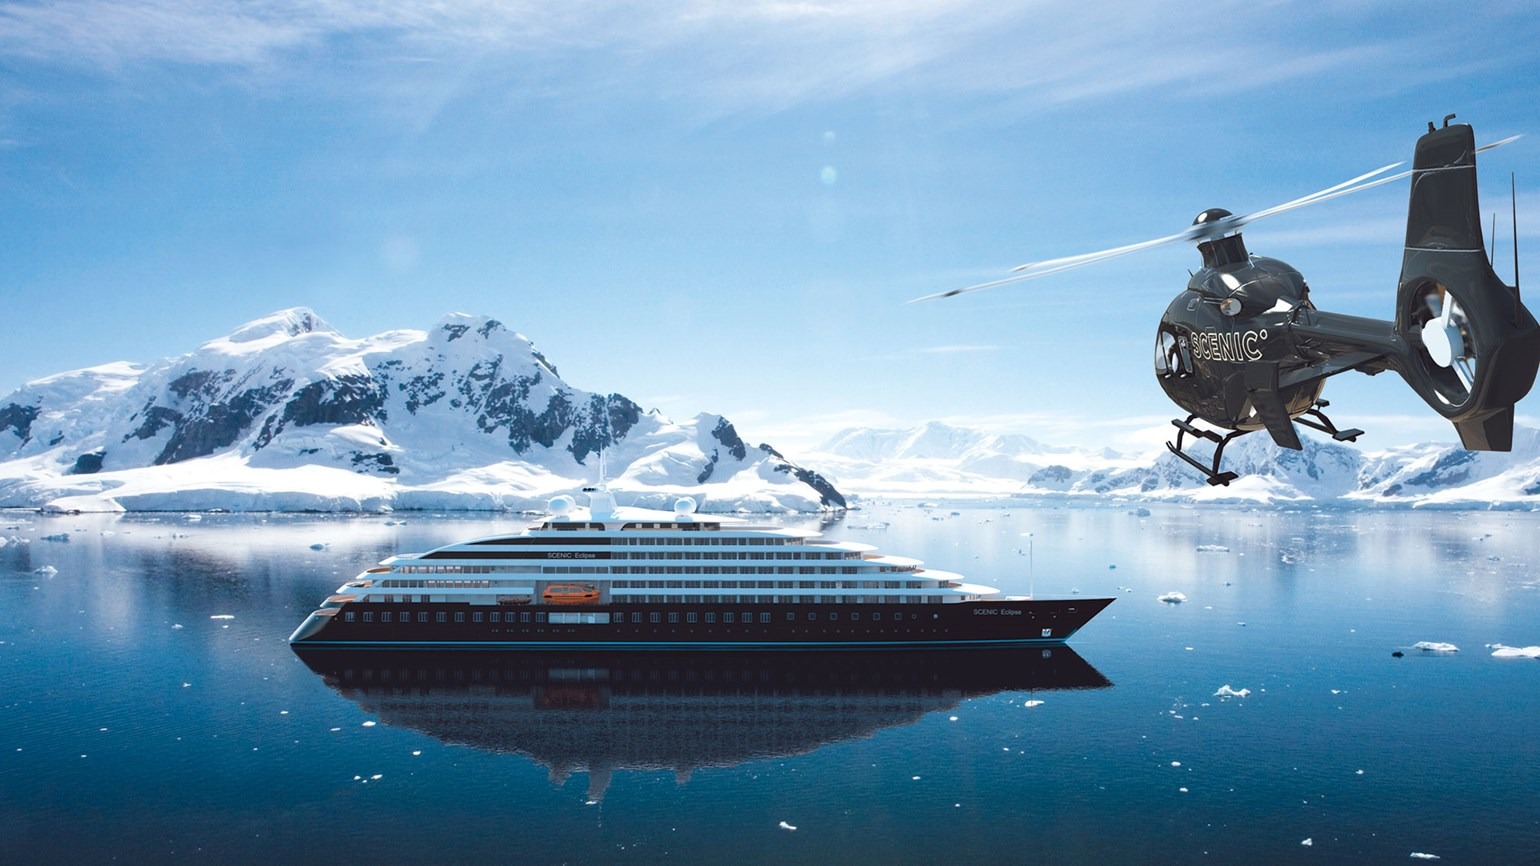 Scenic Eclipse The Worlds First 6 Star Discovery Yacht With Helicopters And A Submarine